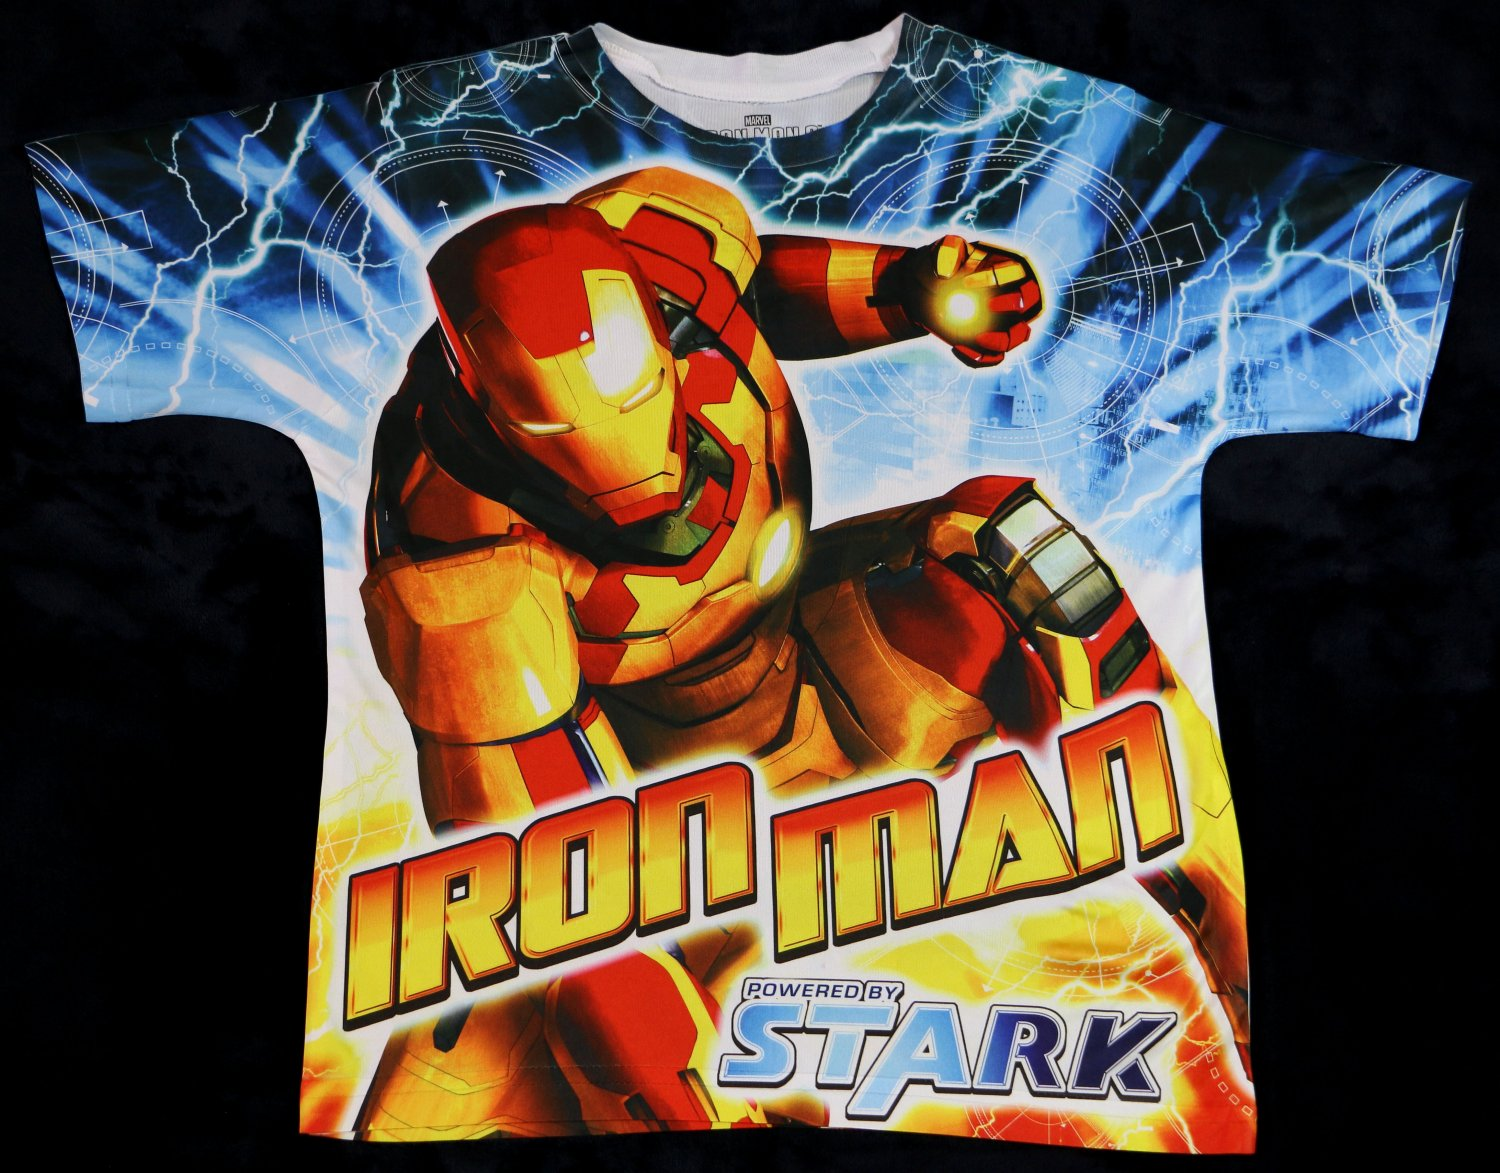 NEW Marvel IRON MAN 3 Powered by Stark T Shirt Size S (6/7)